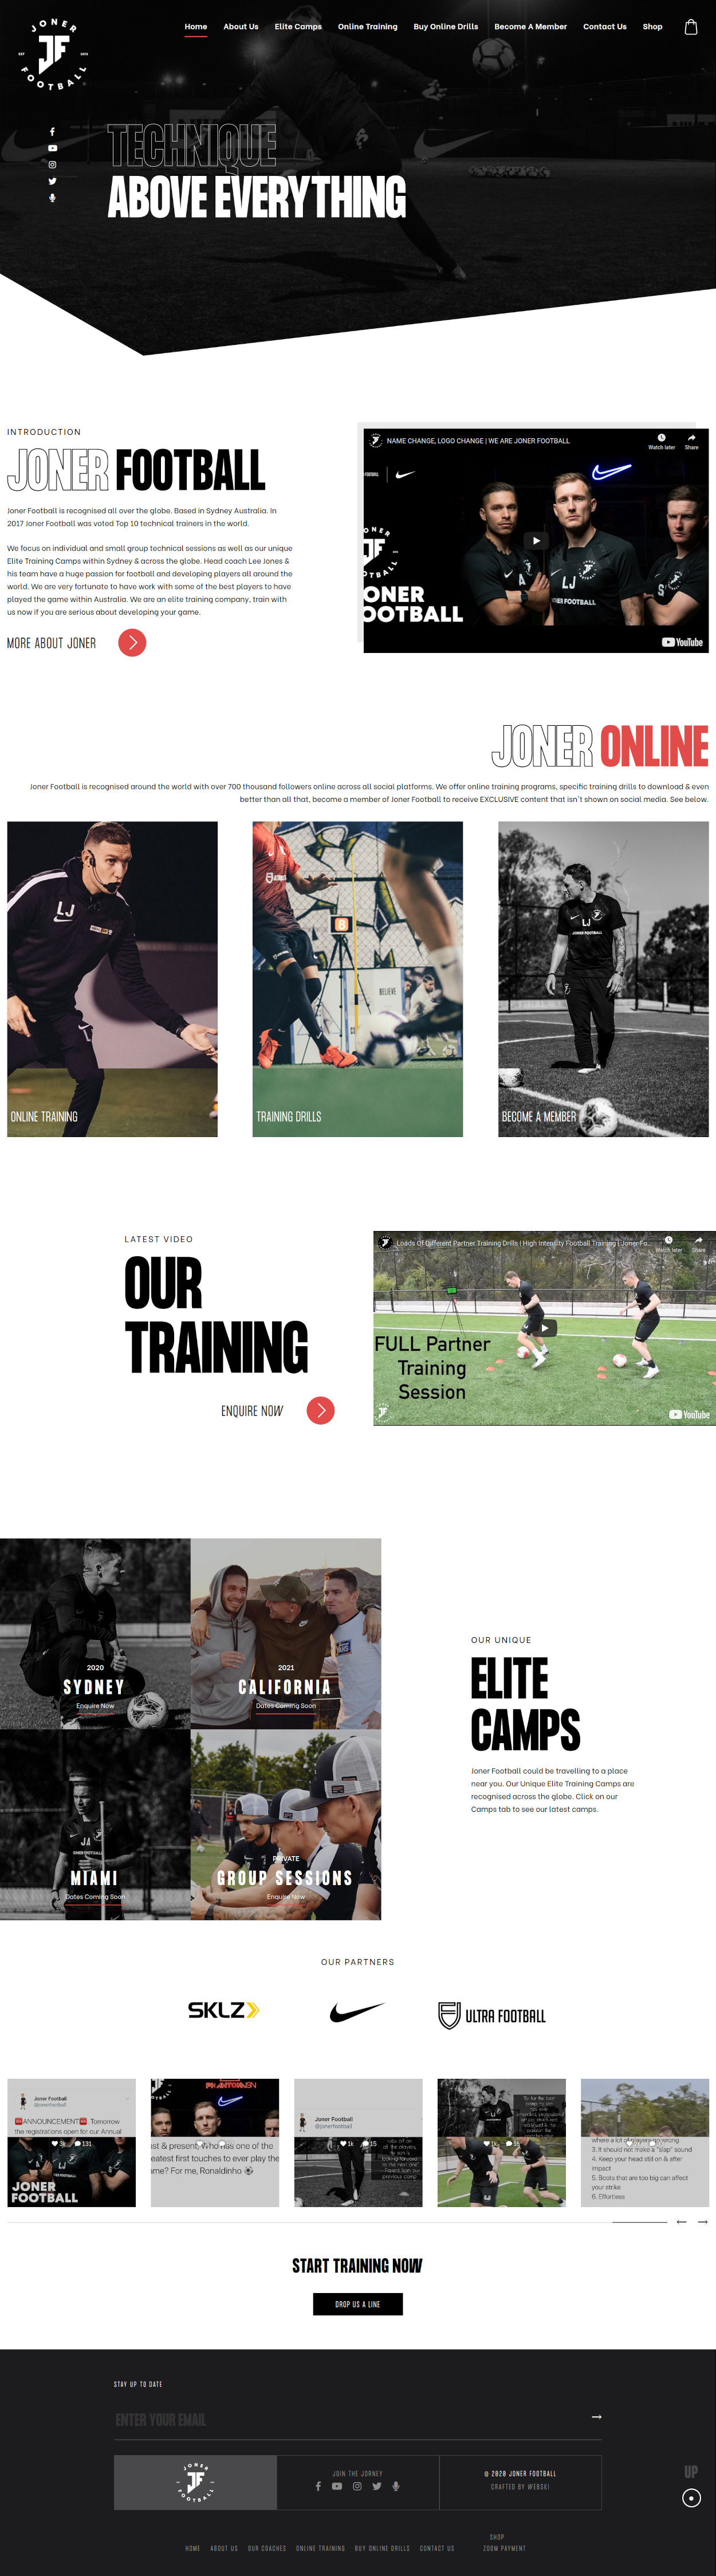 football-website-design